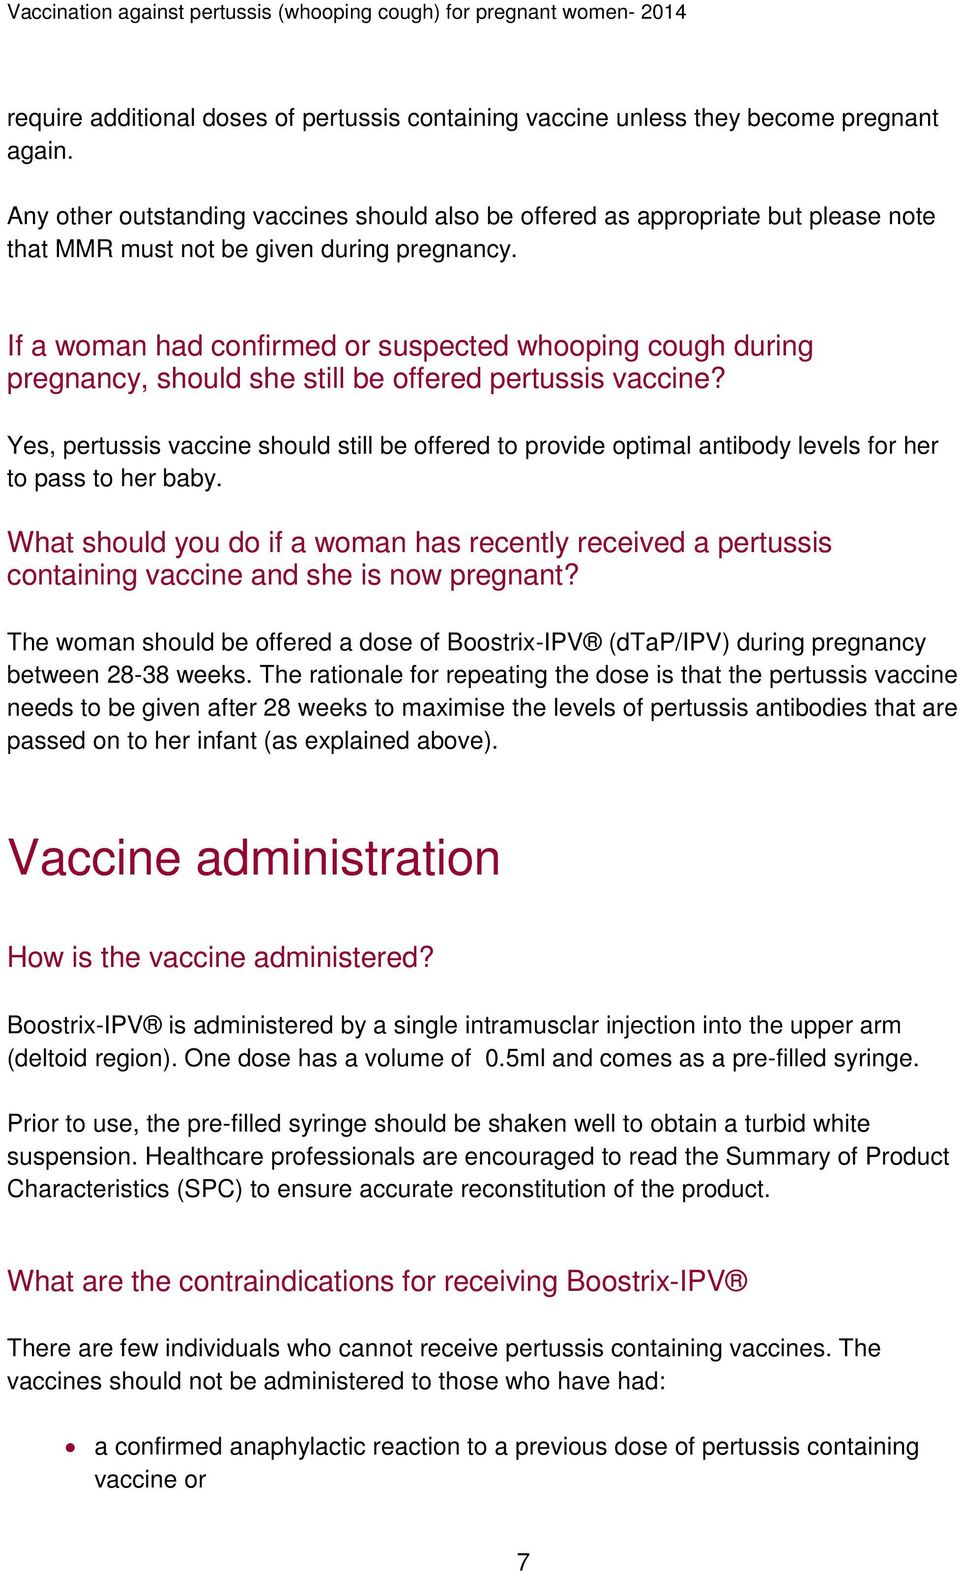 If a woman had confirmed or suspected whooping cough during pregnancy, should she still be offered pertussis vaccine?